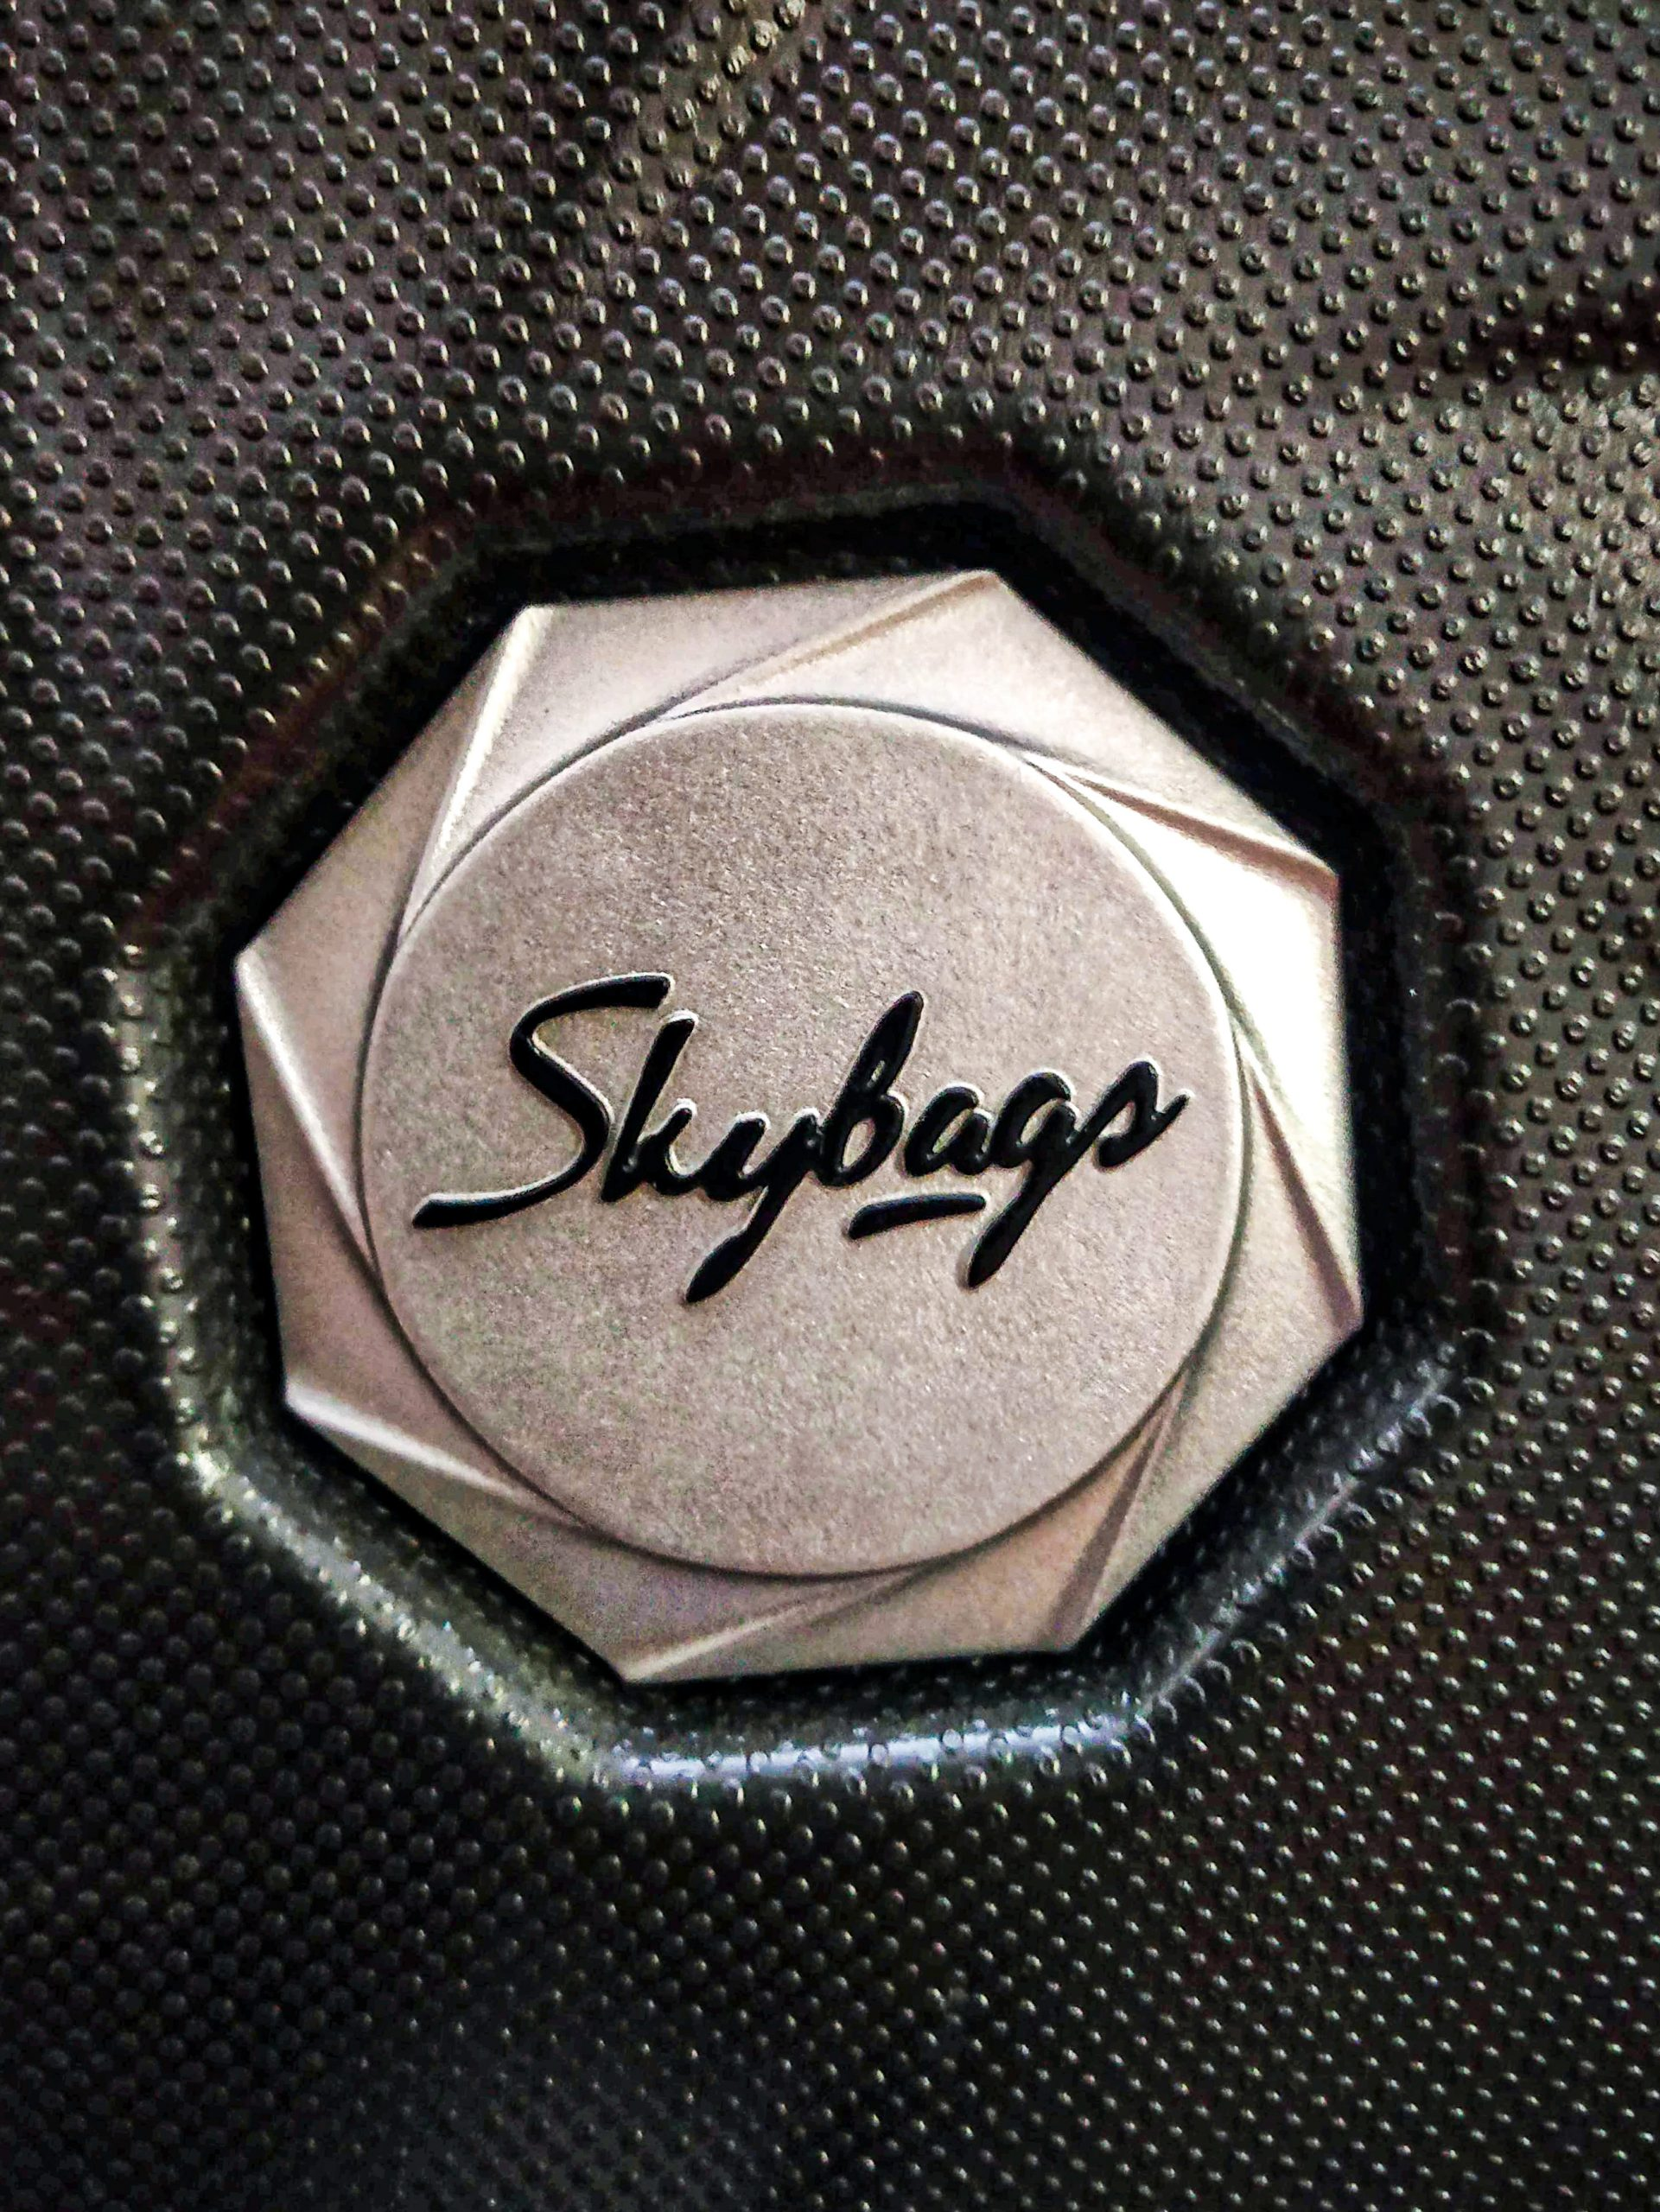 Skybags badge